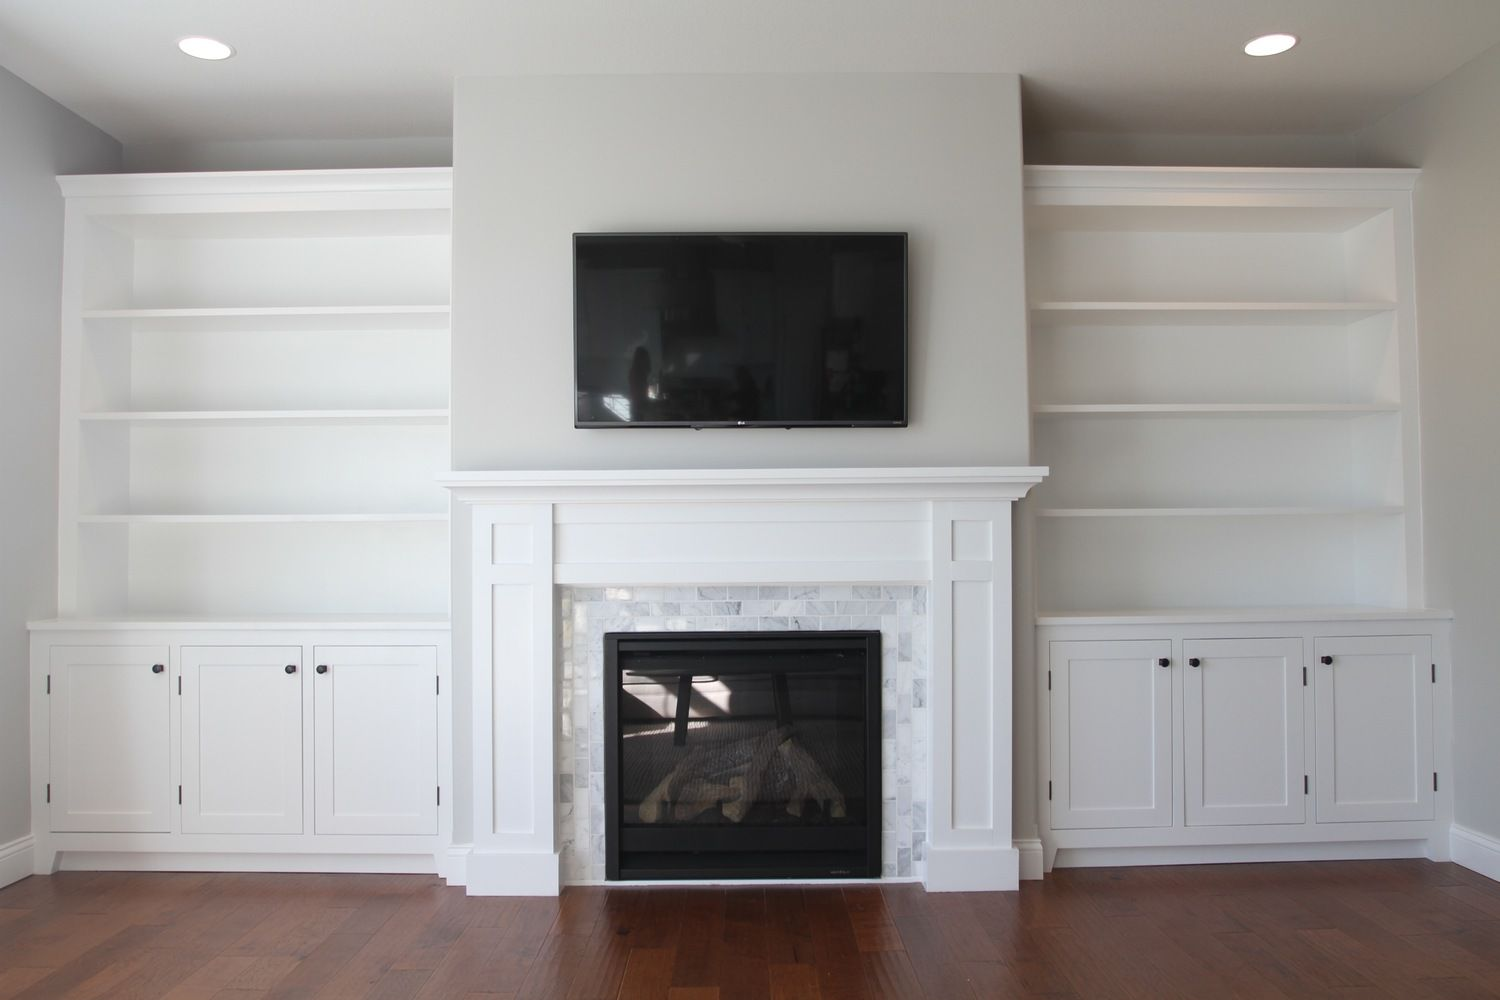 How To Build A Built In The Cabinets Woodworking Build A